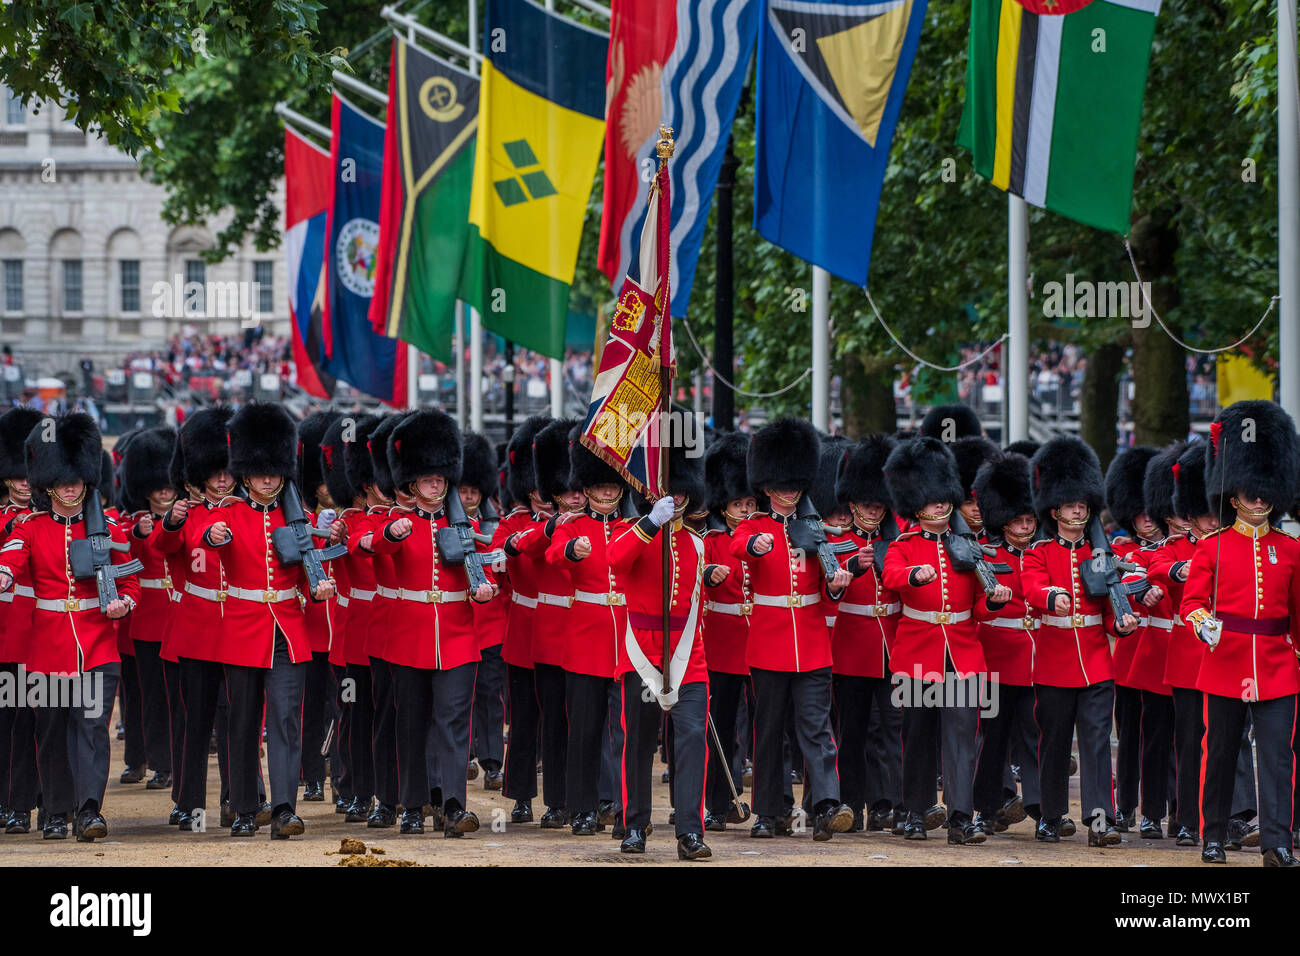 London, UK. 2nd June 2018. Colonel's Review 2018, the last formal inspection of the Household Division before The Queen's Birthday Parade, more popularly known as Trooping the Colour. The Coldstream Guards Troop Their Colour and their Regimental Colonel, Lieutenant General Sir James Jeffrey Corfield Bucknall, takes the salute. Credit: Guy Bell/Alamy Live News Stock Photo